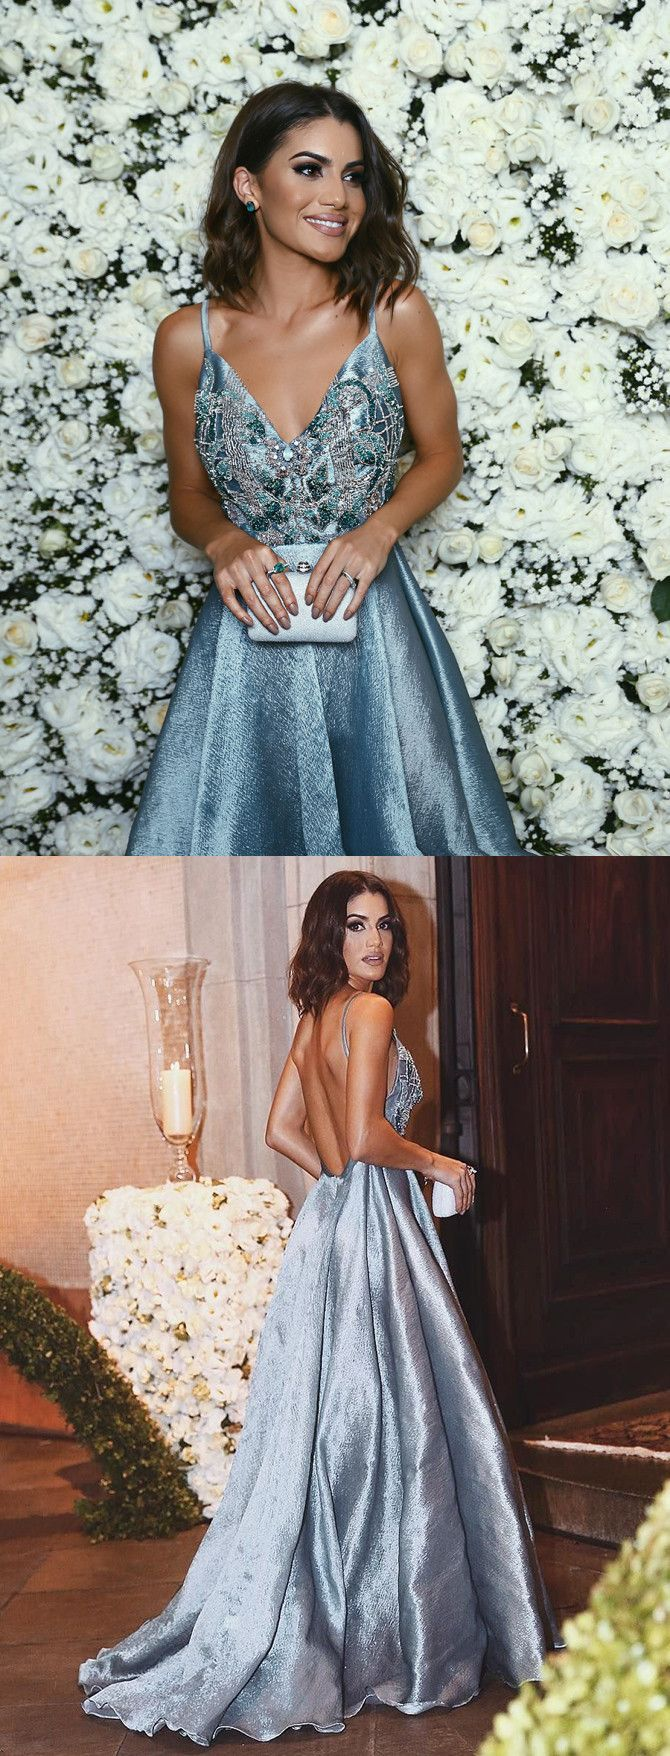 best vestidos maxi images on pinterest long prom dresses prom